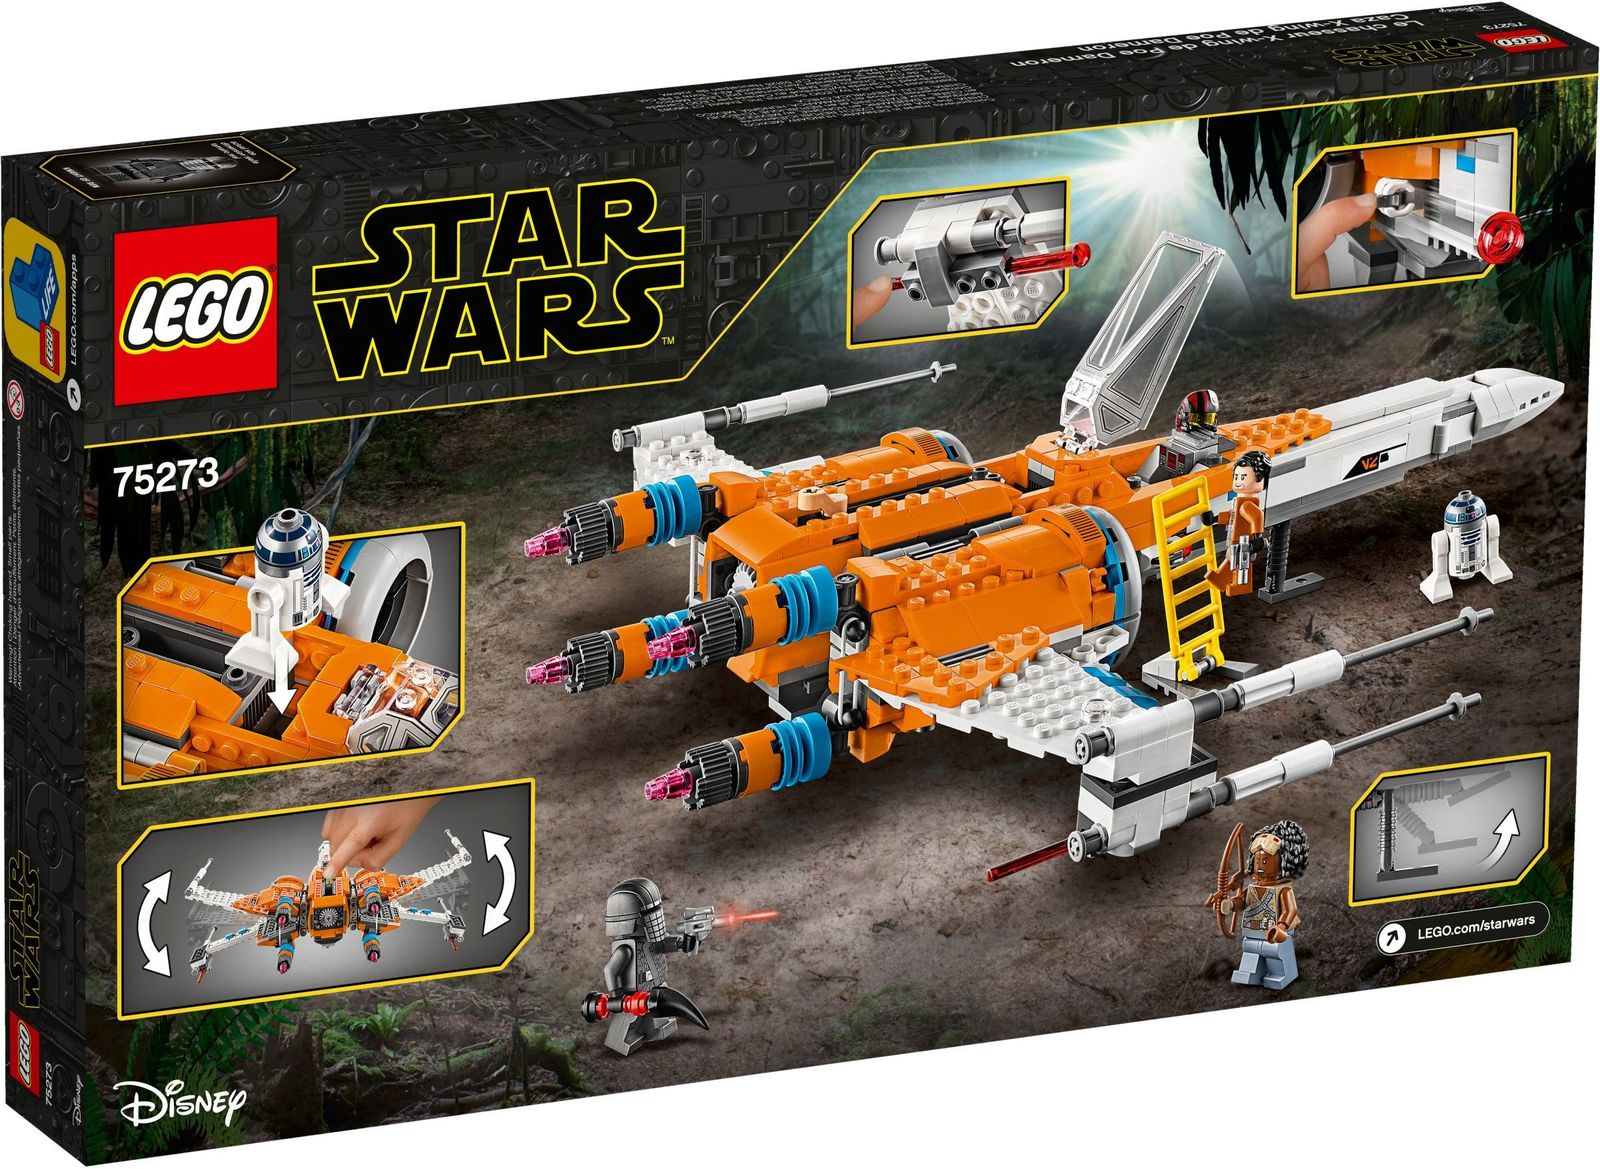 LEGO: Star Wars - Poe Dameron's X-wing Fighter image